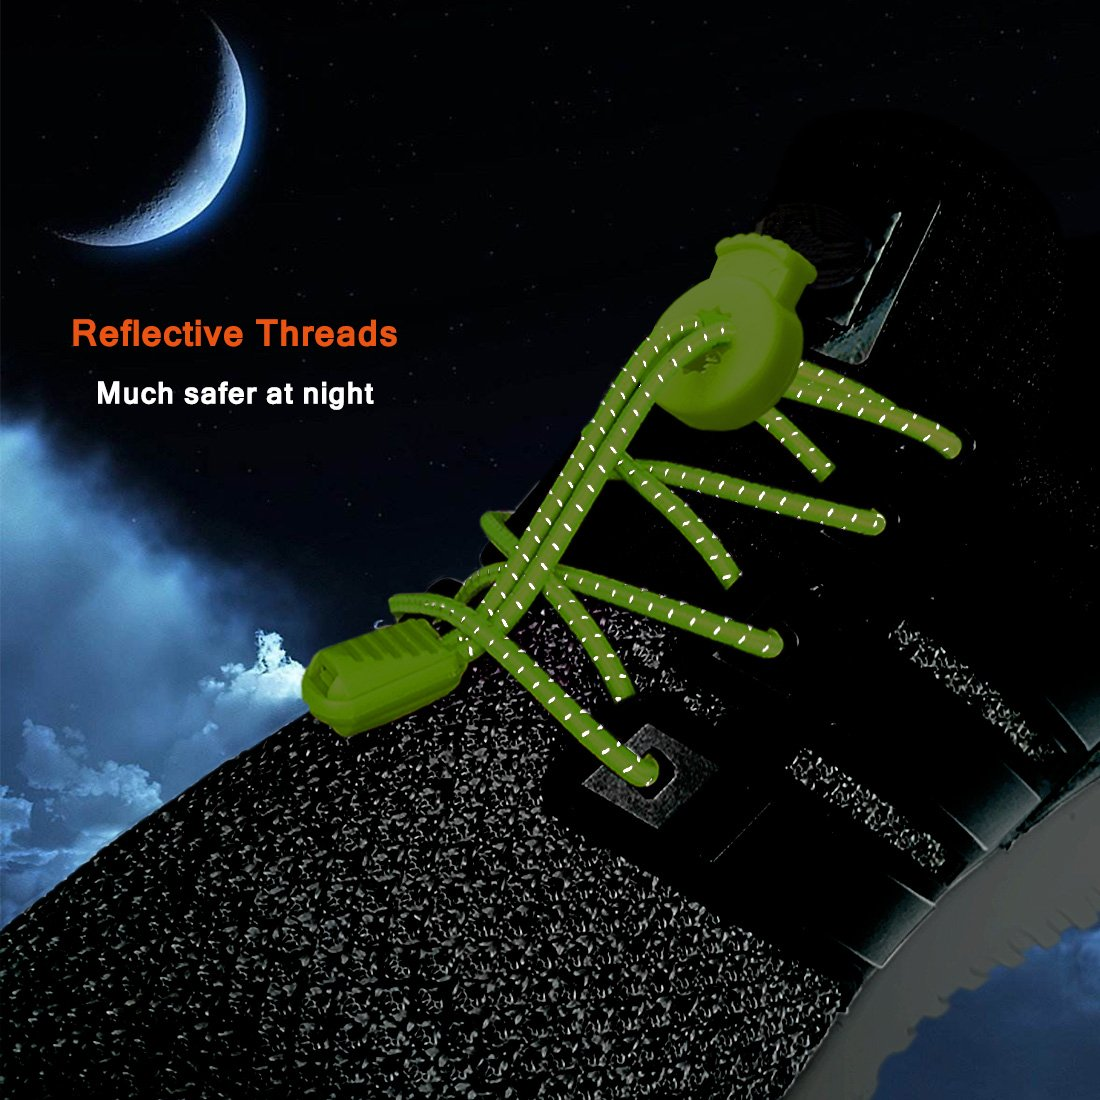 Canwn 2 Pairs Elastic Laces, Reflective Elastic Shoe Laces 120cm No Tie Elastic Lock Shoelaces for Adults, Kids, Older Generation, Disabled, Runners